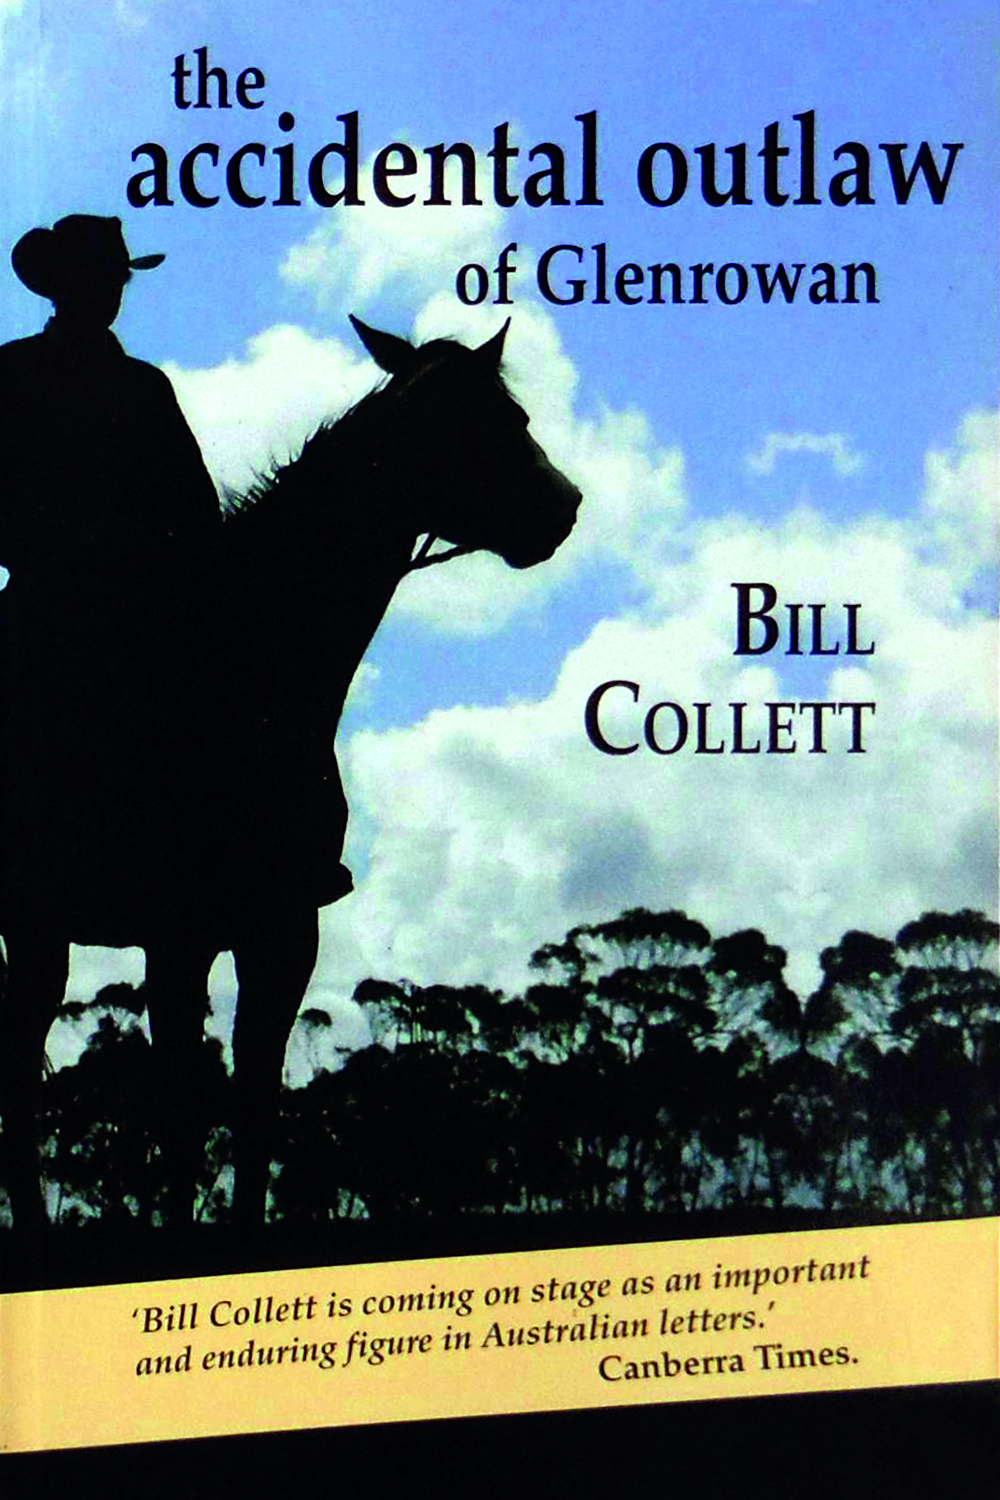 The Accidental Outlaw of Glenrowan by Bill Collett